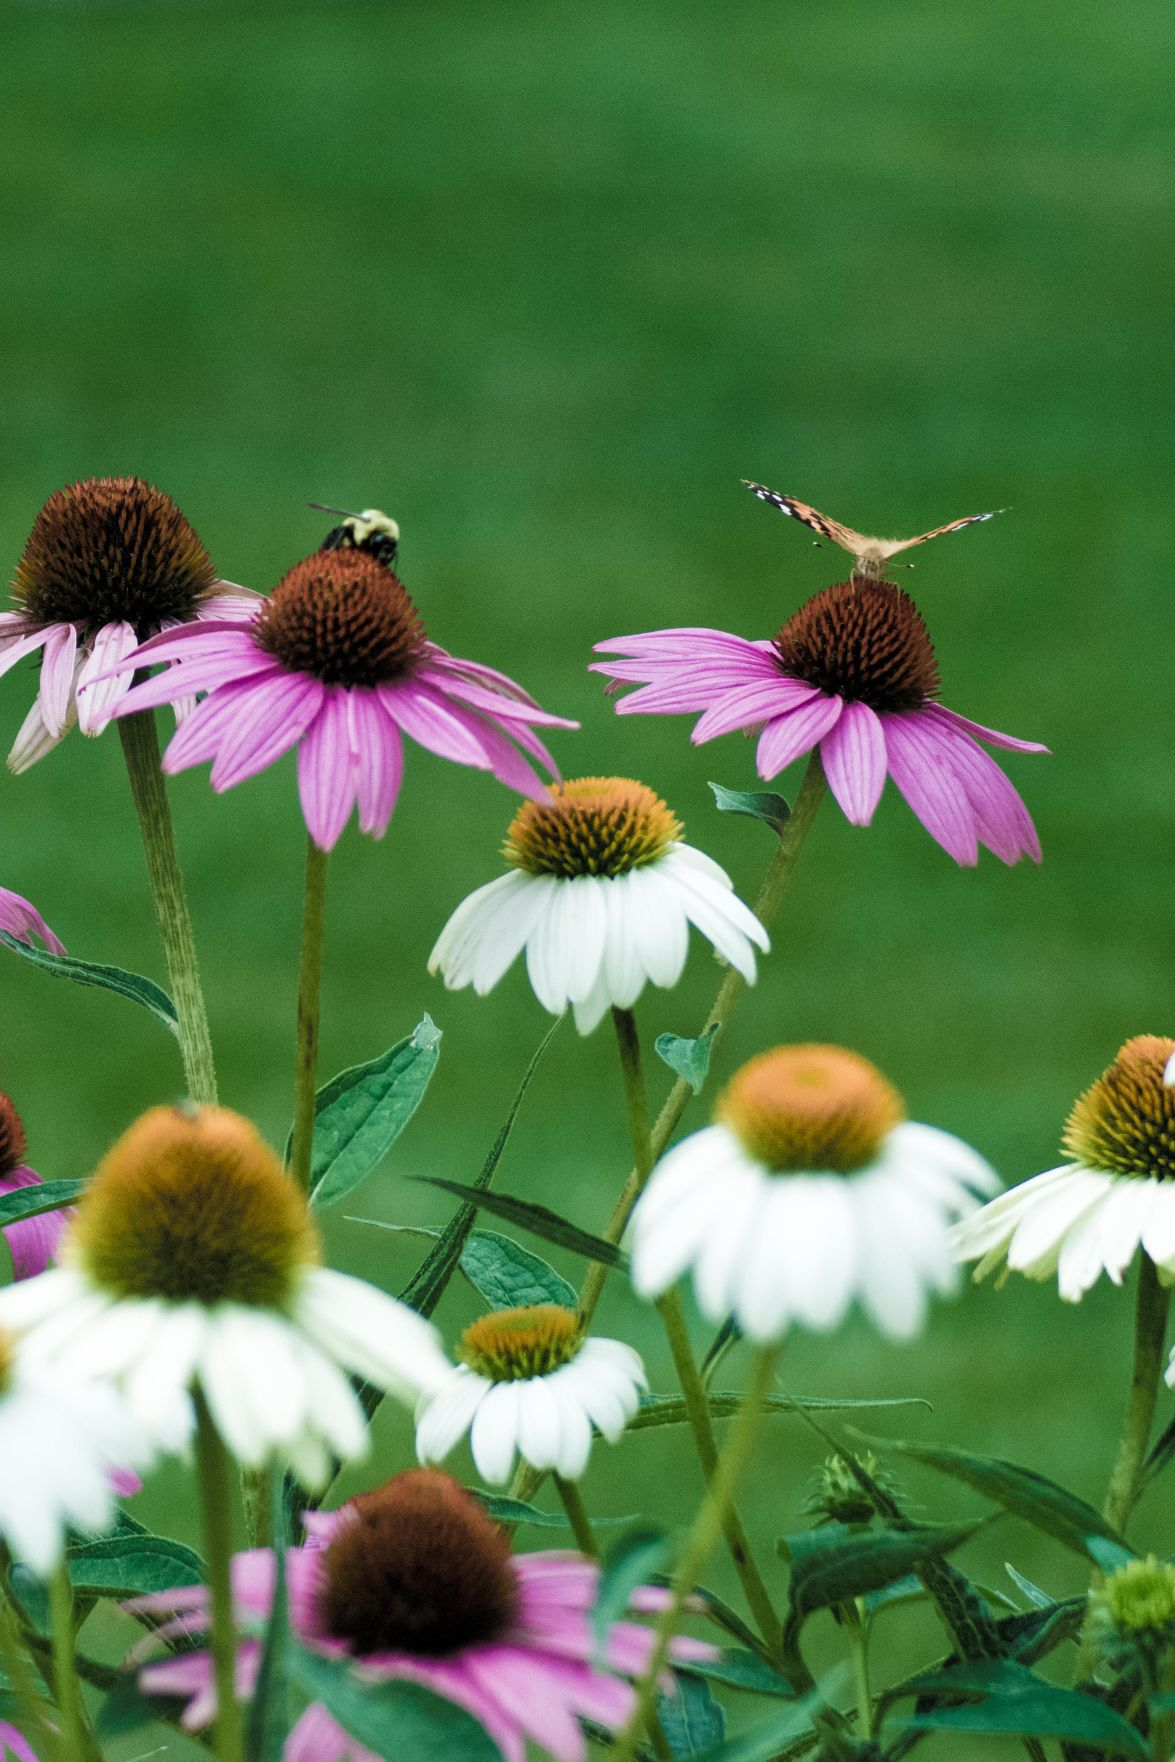 Bee & butterfly on coneflowers